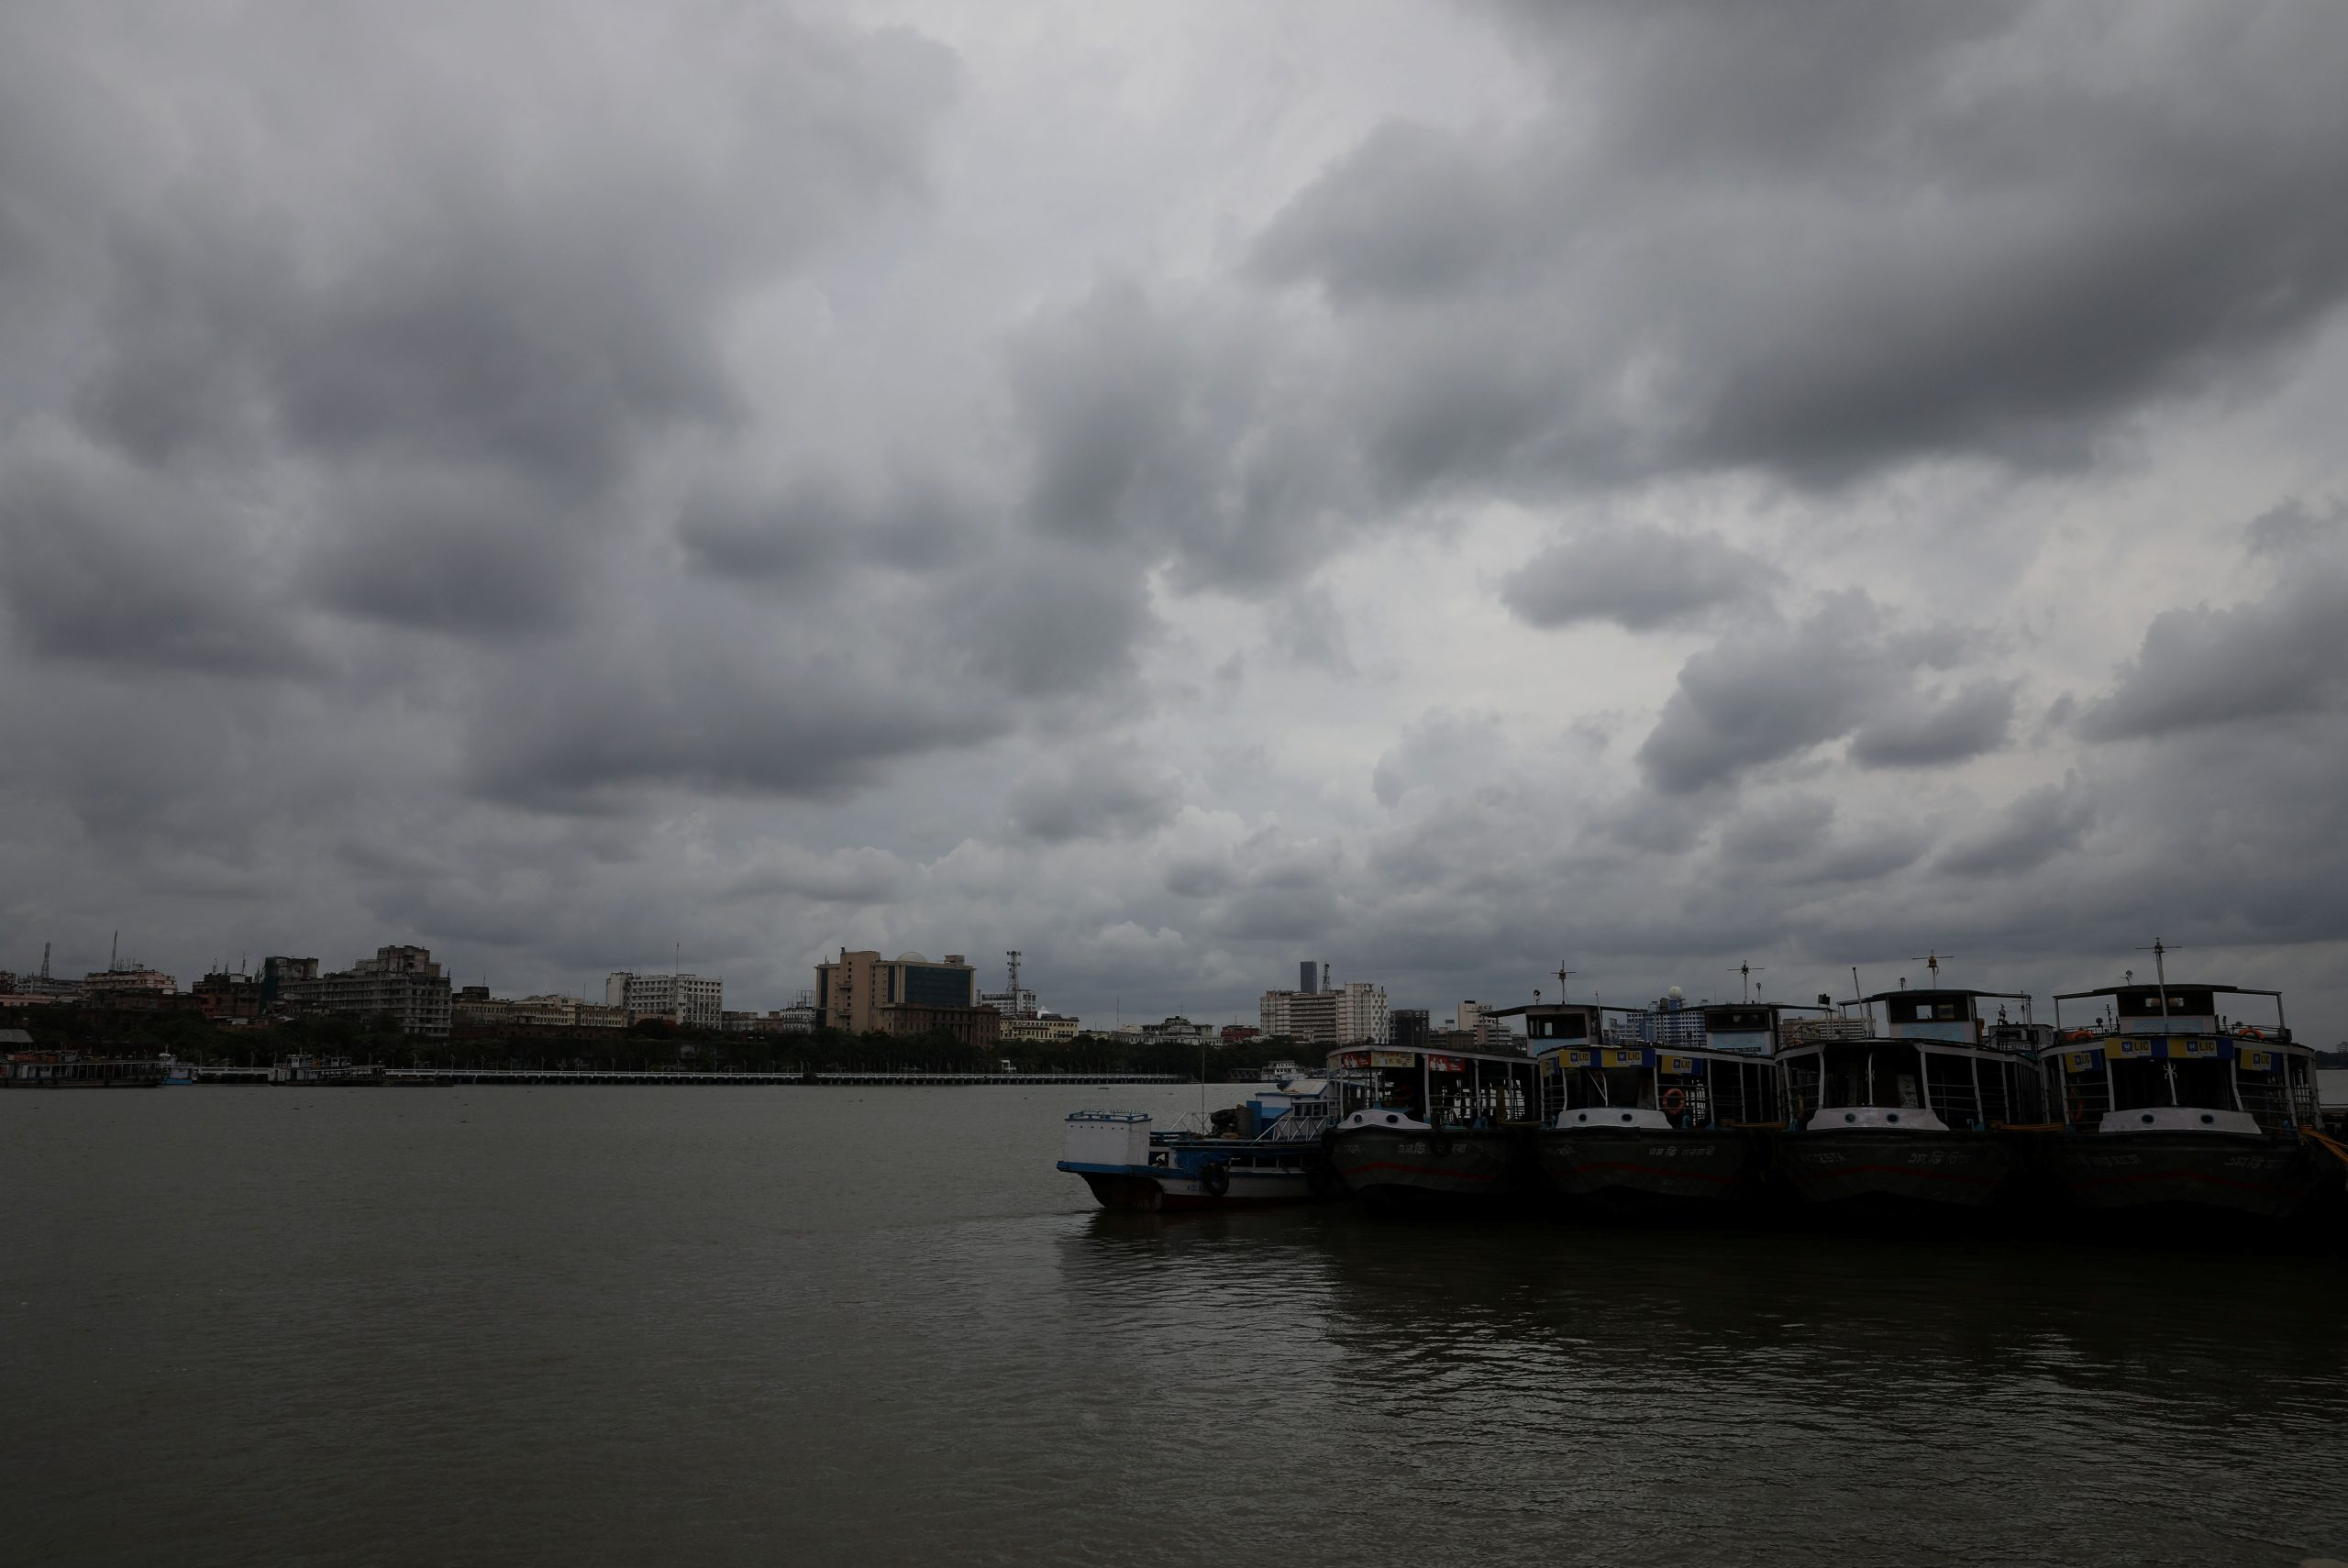 Clouds cover the skies over the river Ganges ahead of Cyclone Amphan, in Kolkata, India, May 19, 2020. REUTERS/Rupak De Chowdhuri